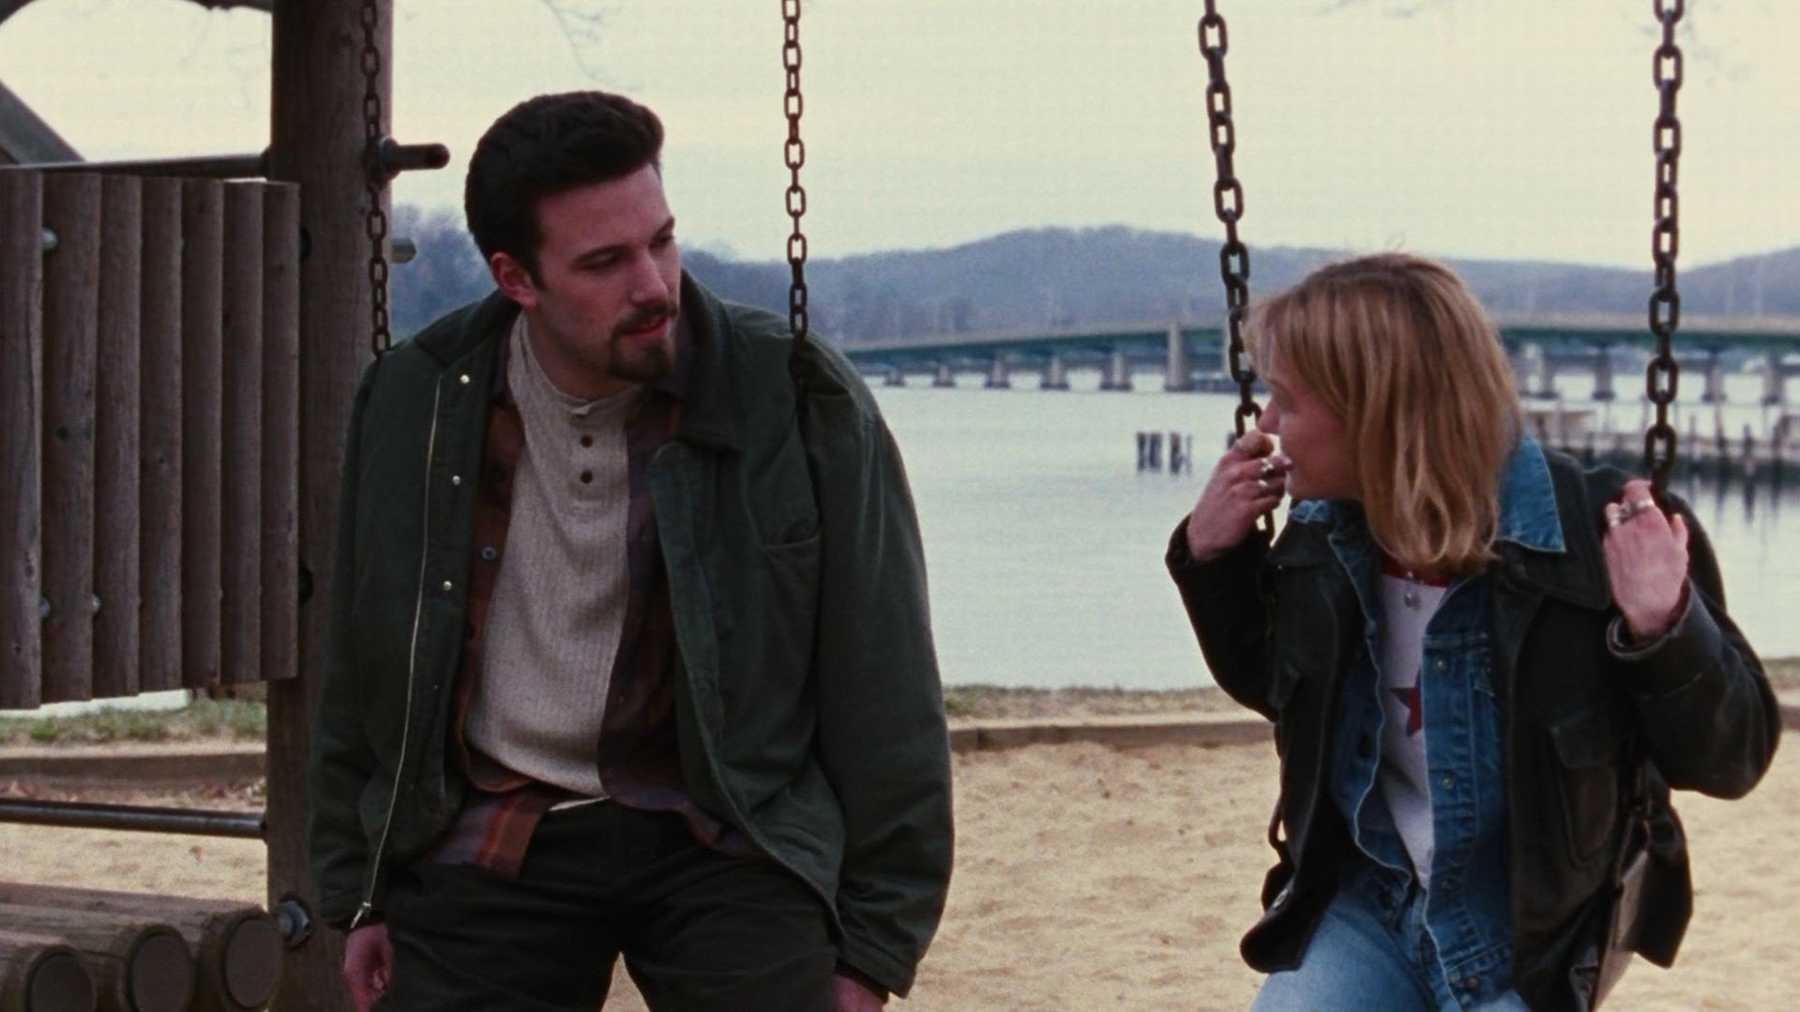 20 Of The Best Ben Affleck Movies To Watch